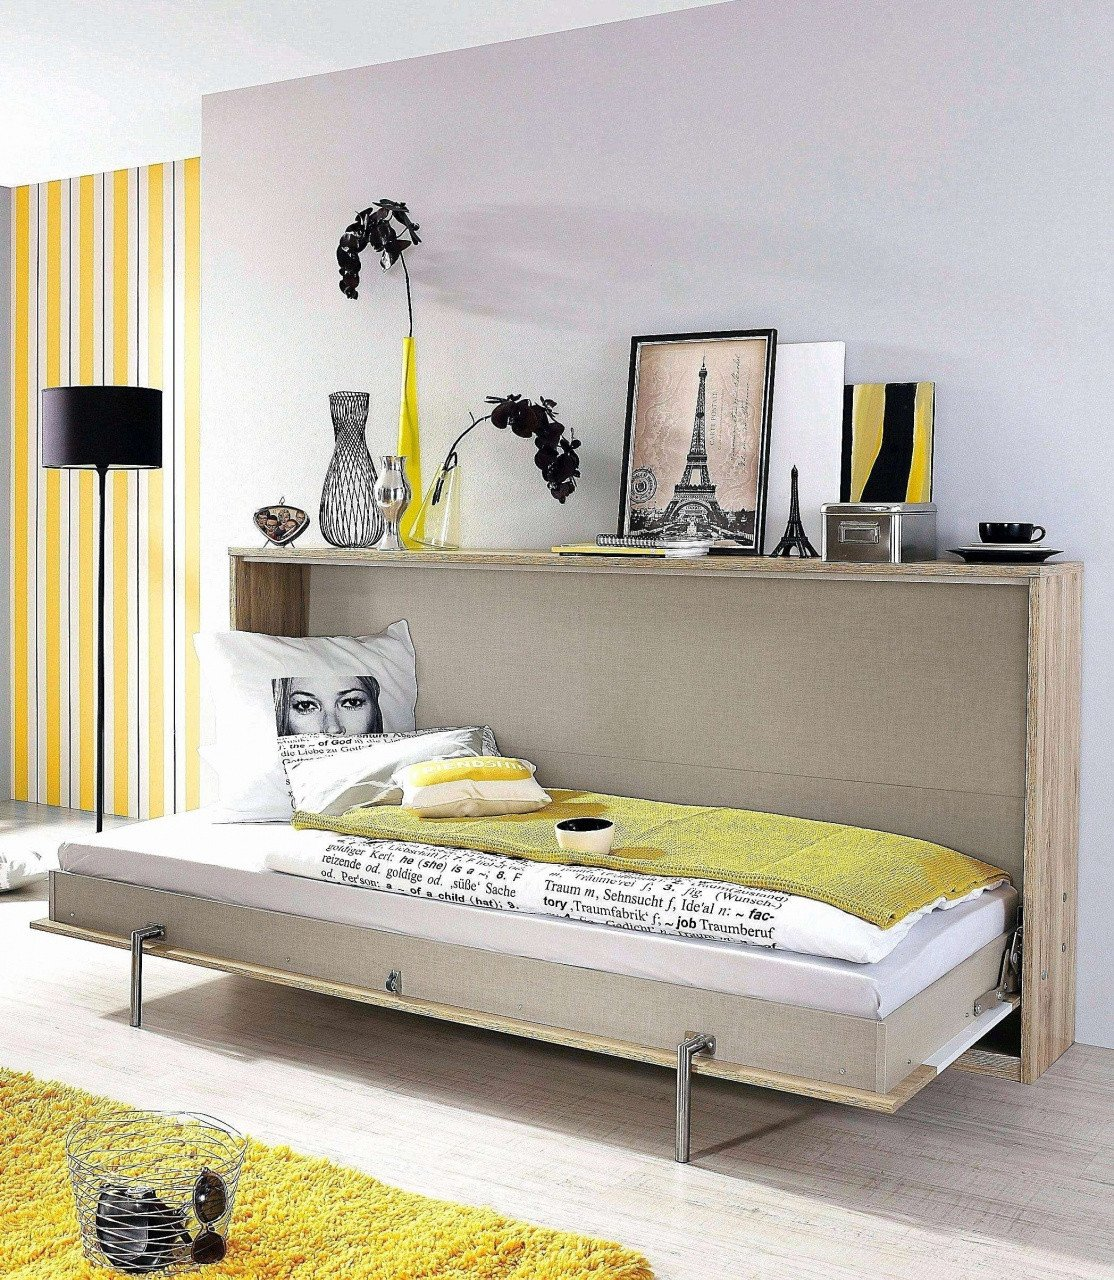 King Bedroom Set Ikea Awesome Cute Small Bedroom Decorating Ideas – the New Daily Nation